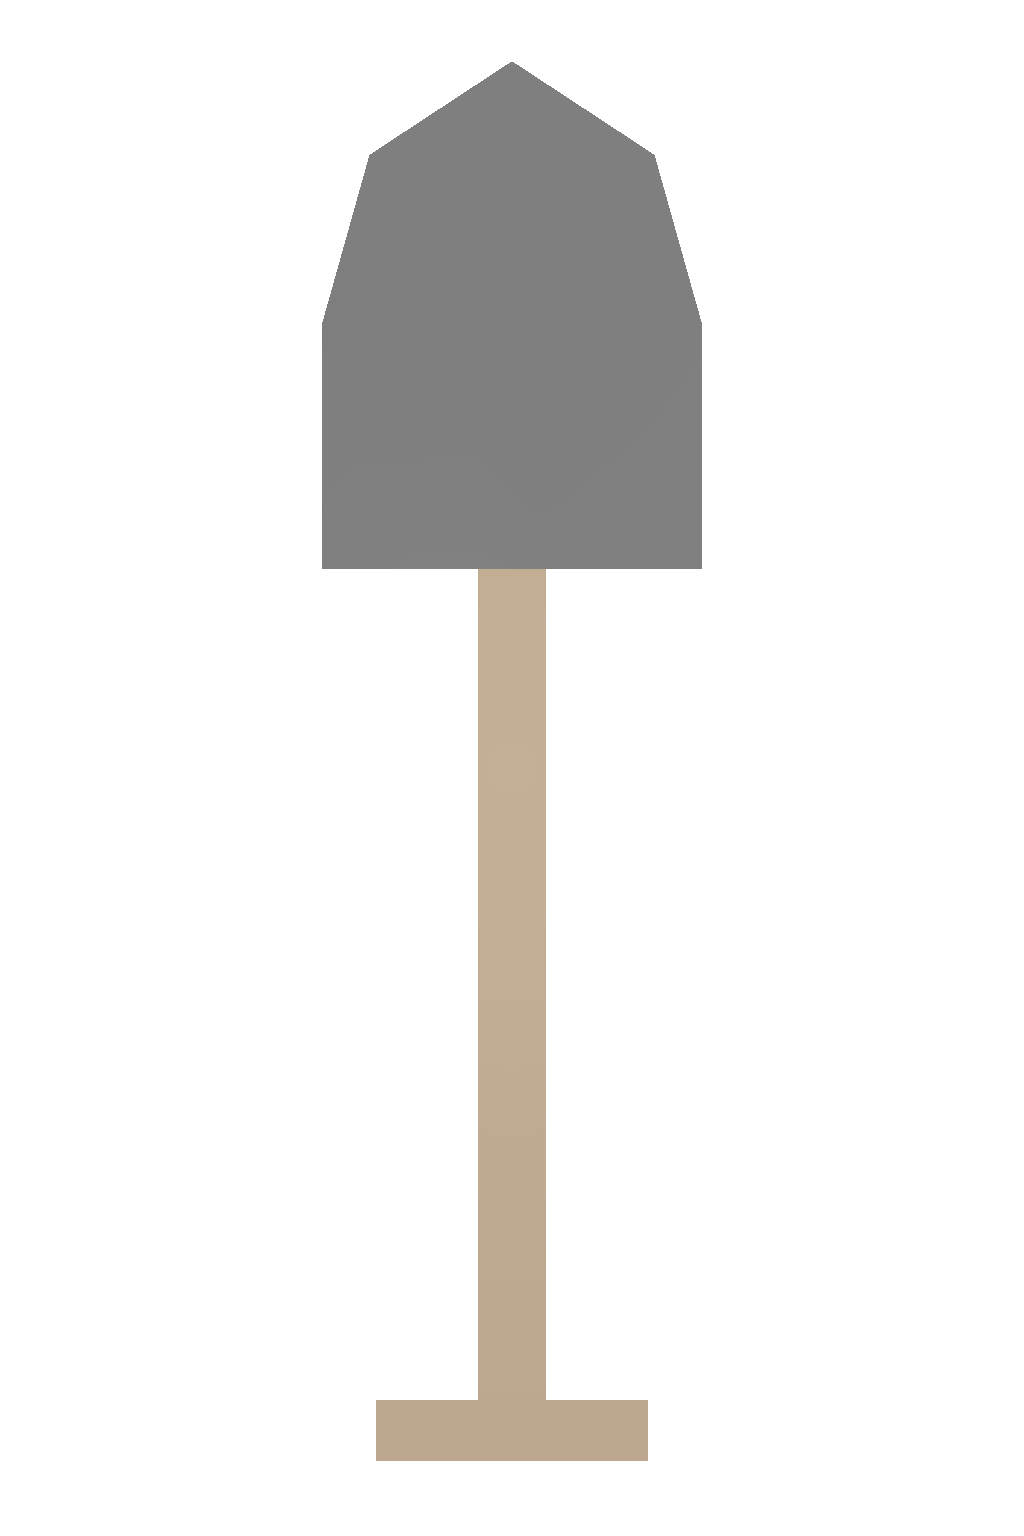 Picture of Unturned Item: Shovel